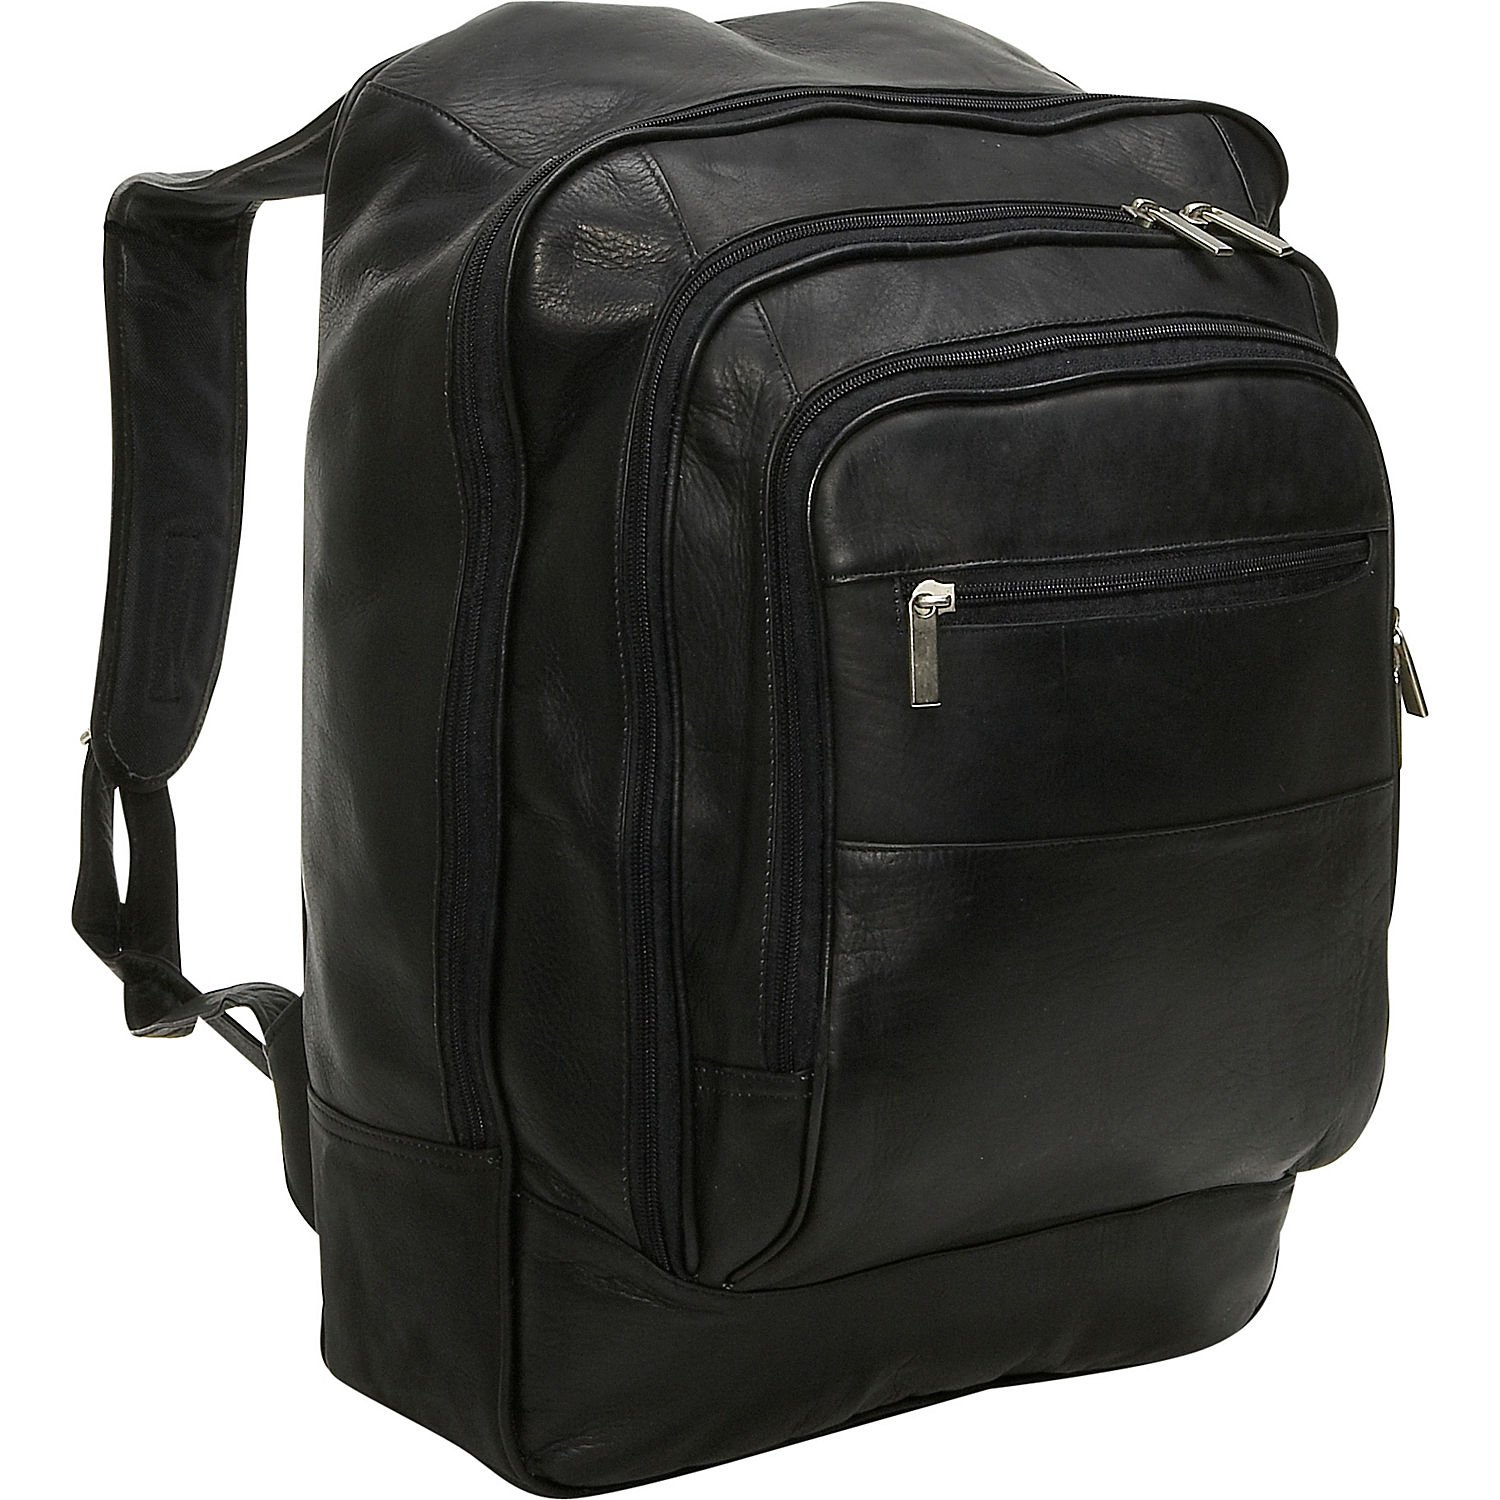 David King Leather Oversized Laptop Backpack in Black by David King & Co